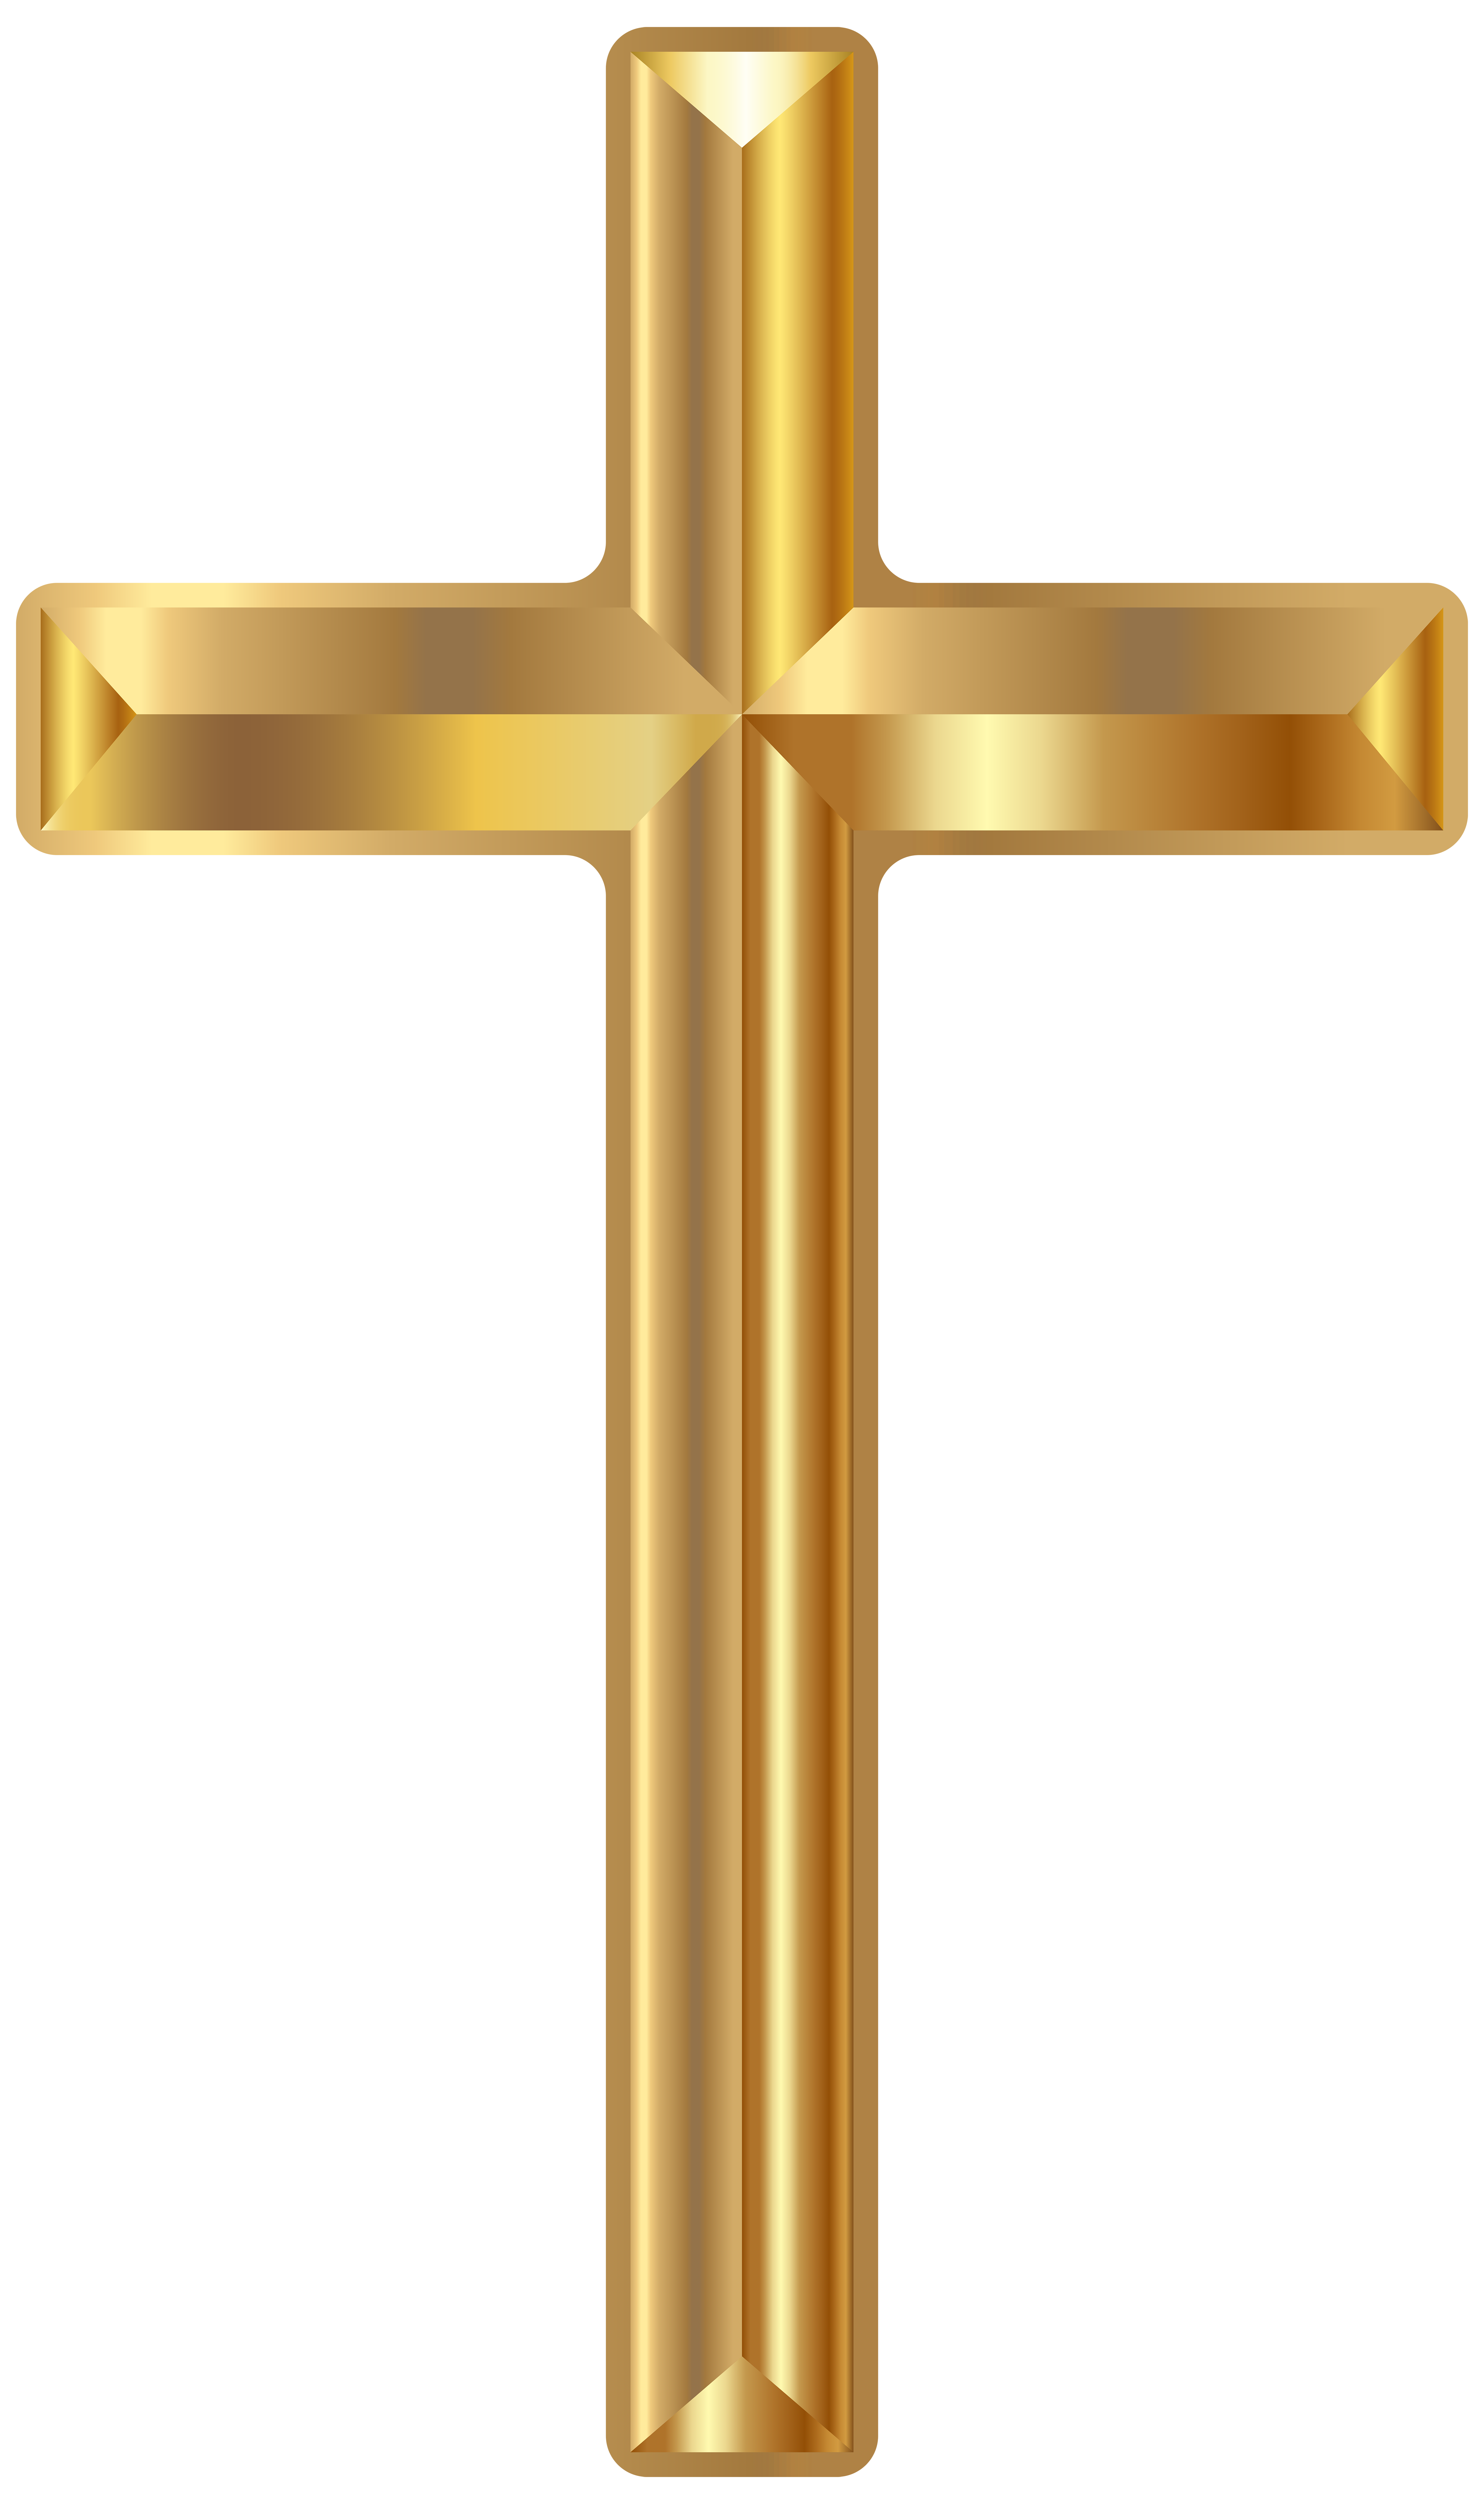 Gold Cross Clipart Png.